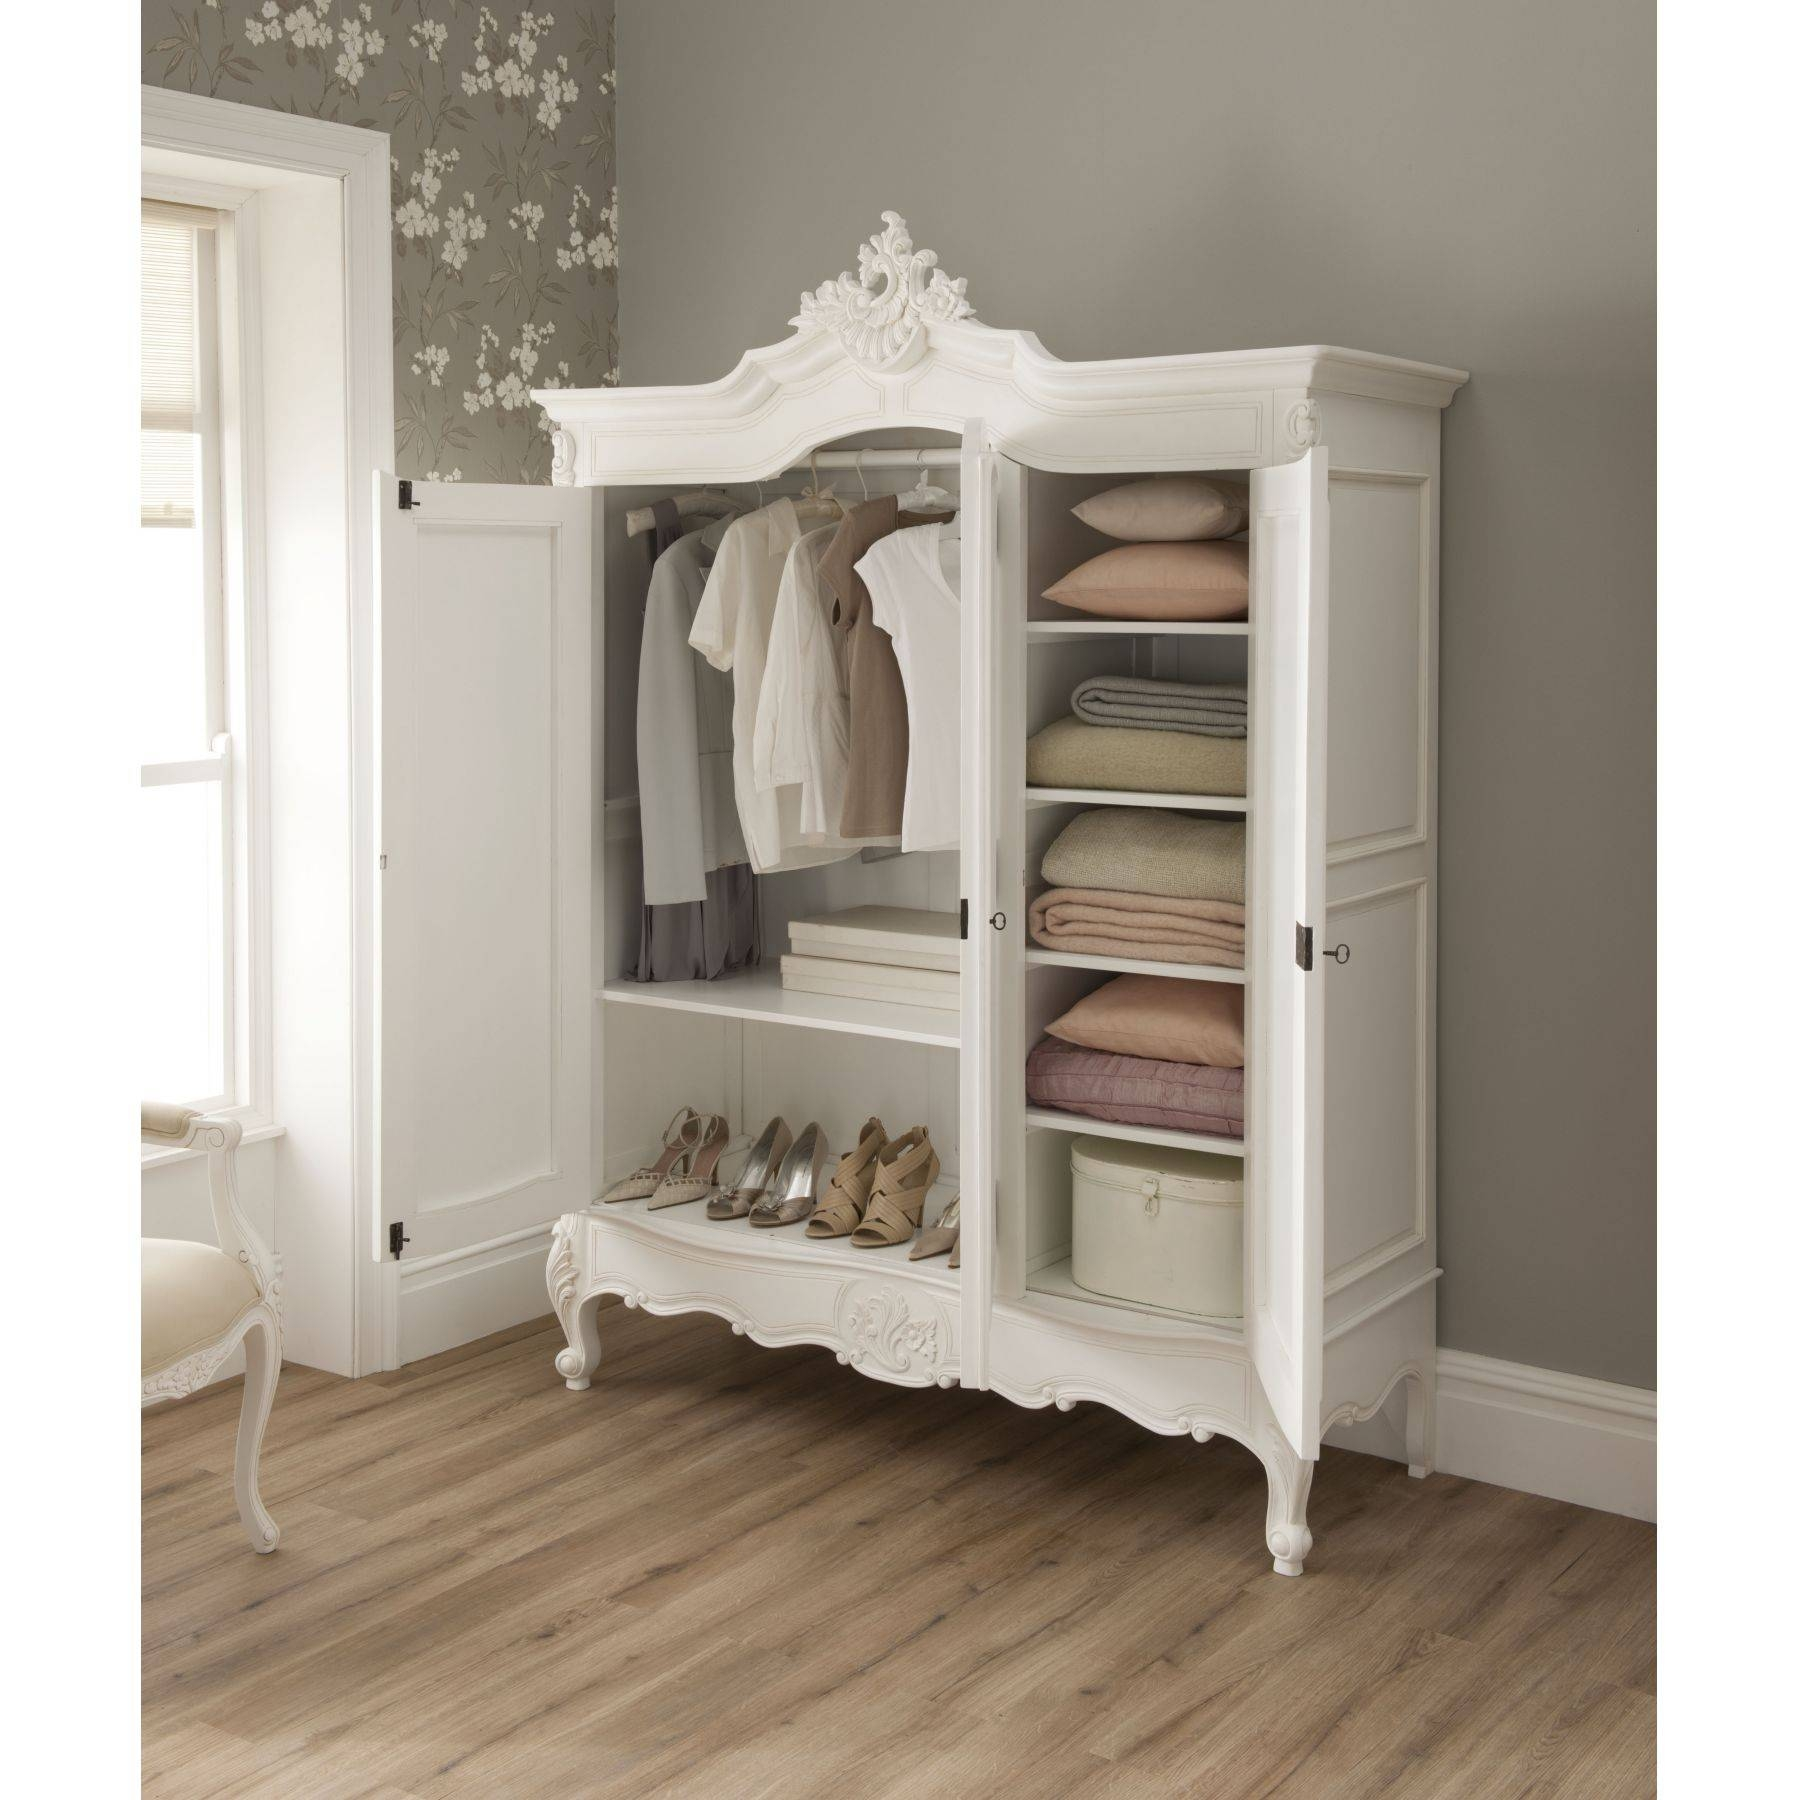 Bedroom Furniture : Green Corner Classic Armoire Wooden Vintage Inside White Vintage Wardrobes (View 15 of 15)